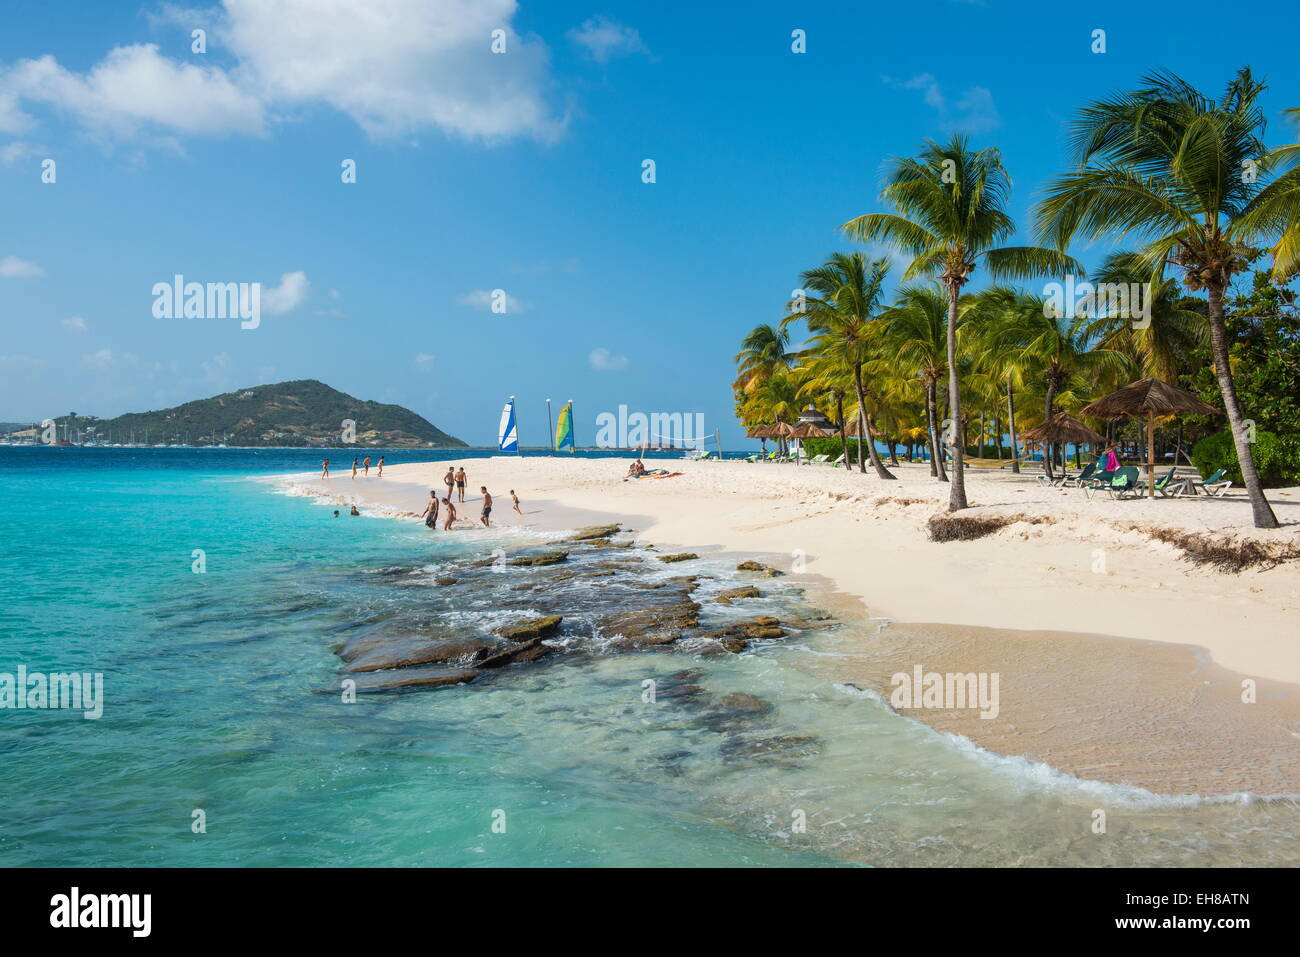 Palm Island, The Grenadines, St. Vincent and the Grenadines, Windward Islands, West Indies, Caribbean, Central America - Stock Image